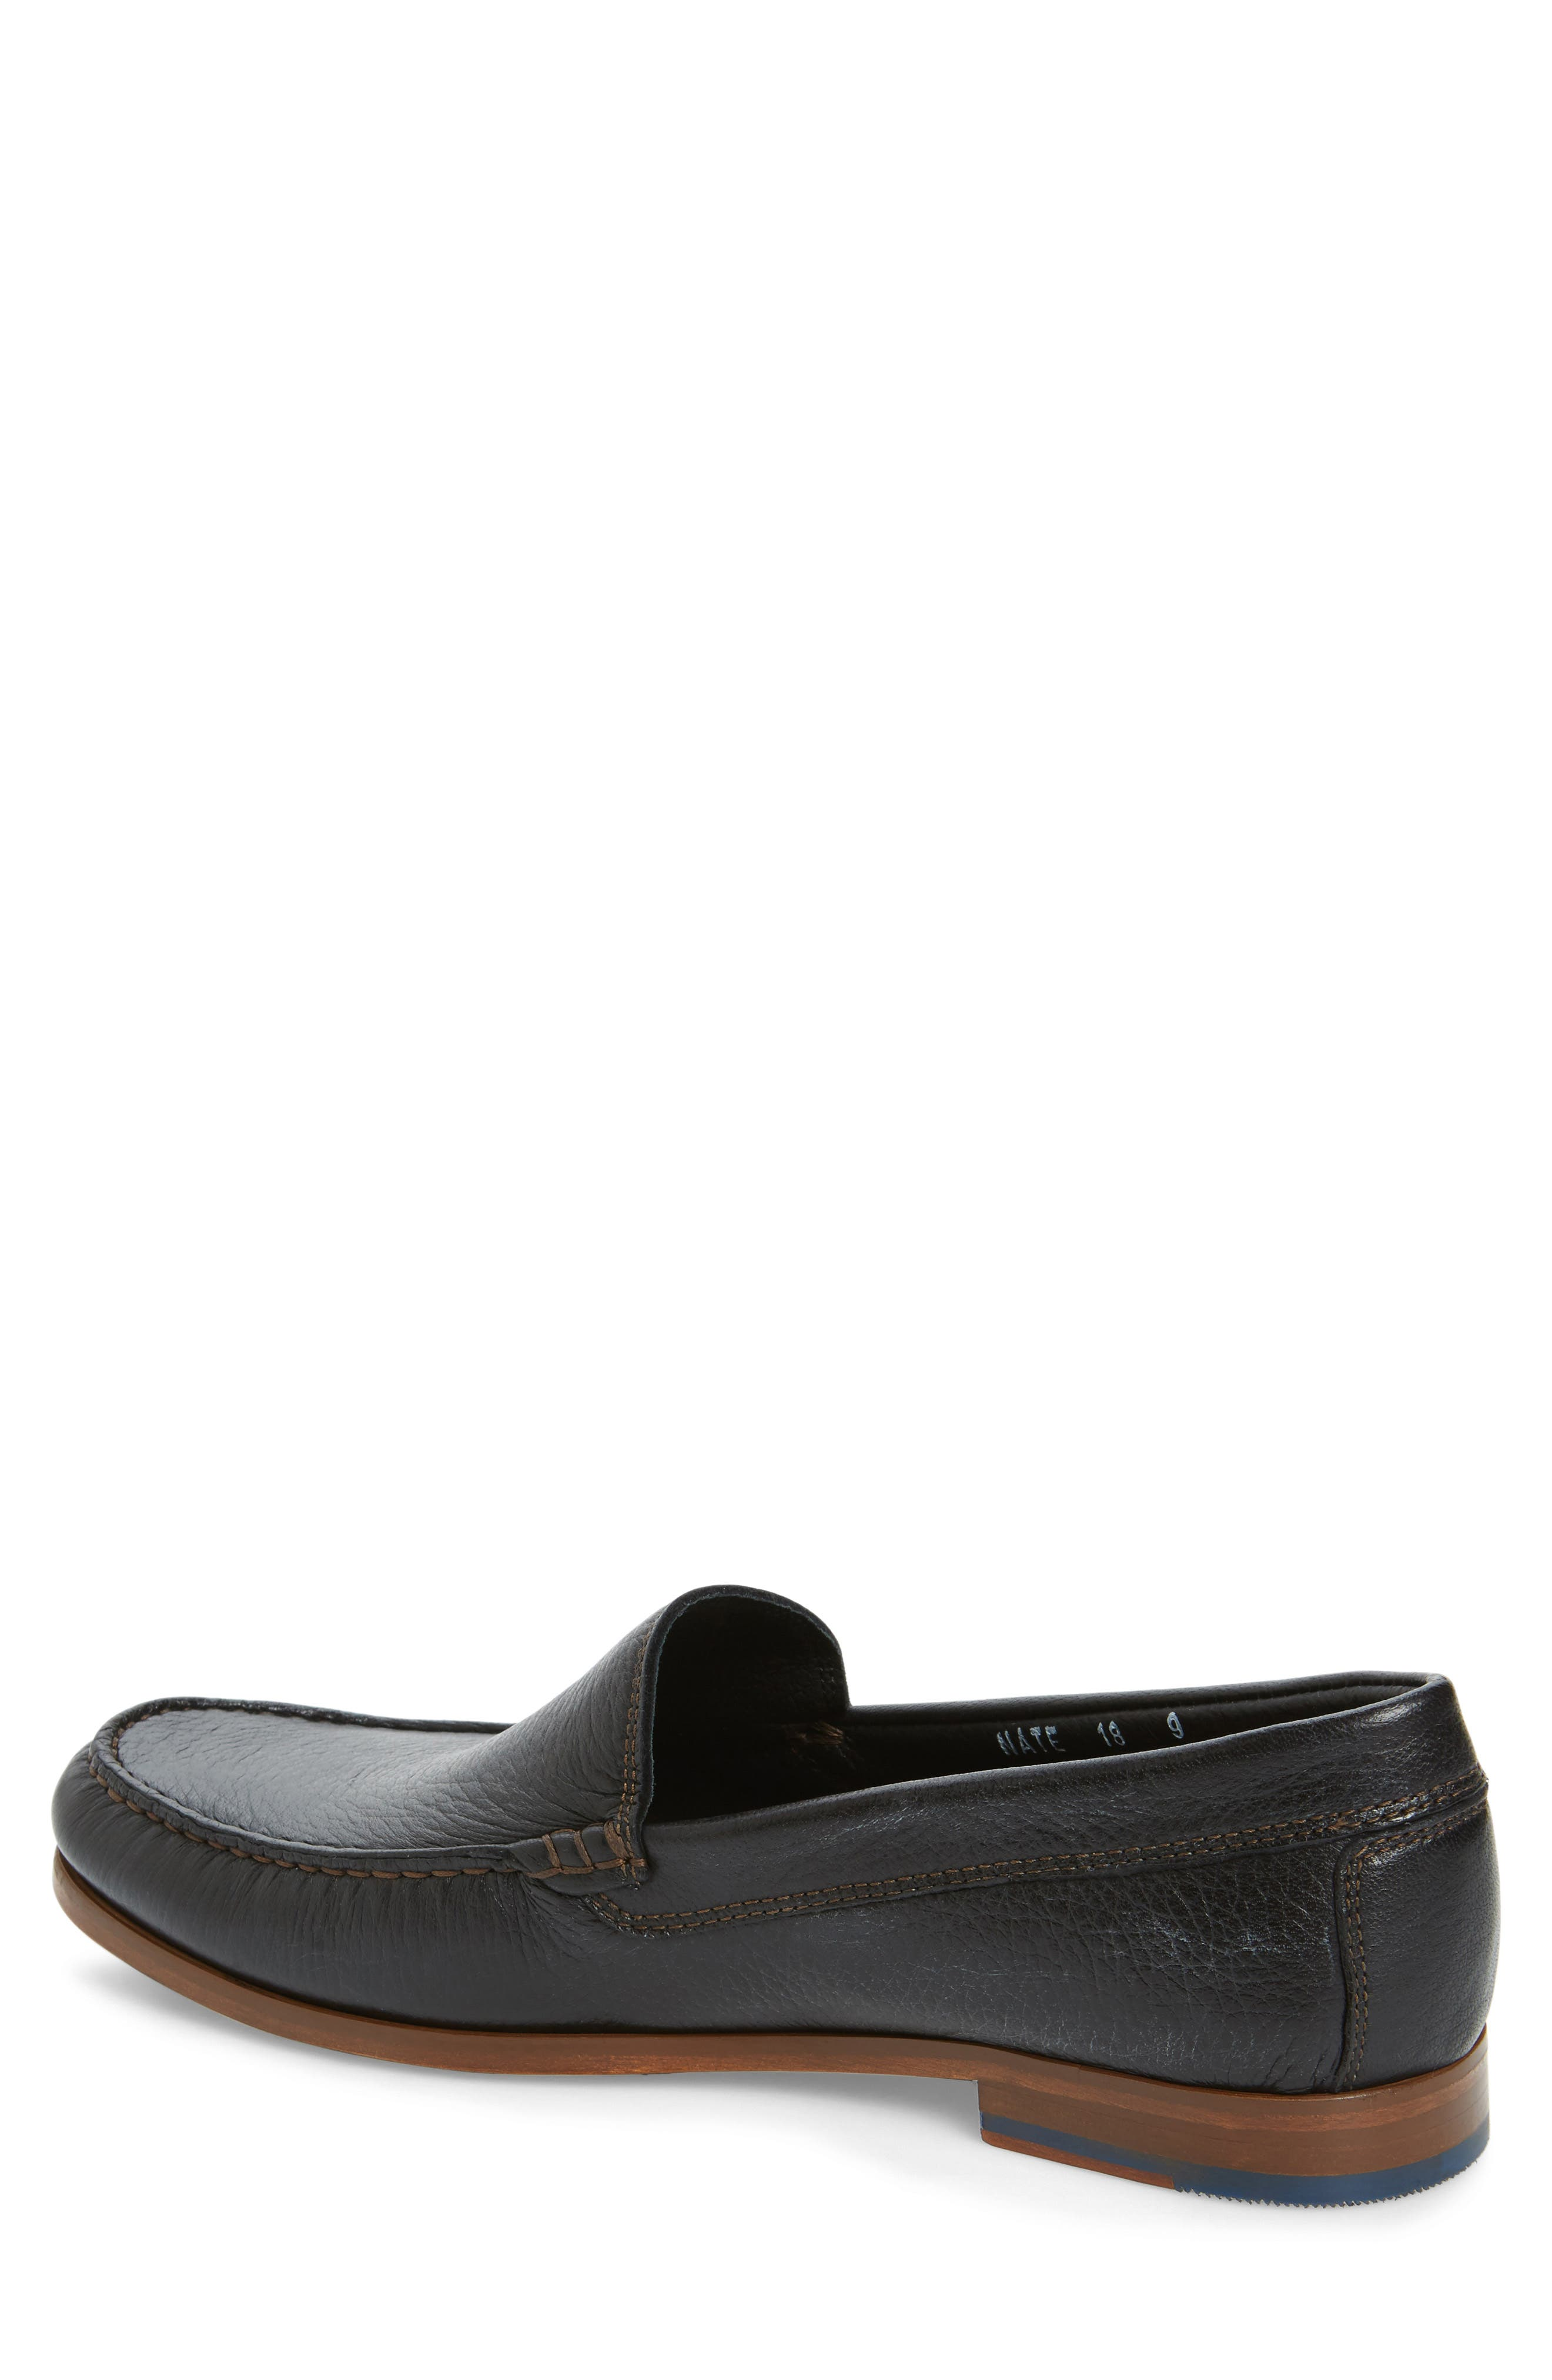 Donald J Pliner 'Nate' Loafer,                             Alternate thumbnail 6, color,